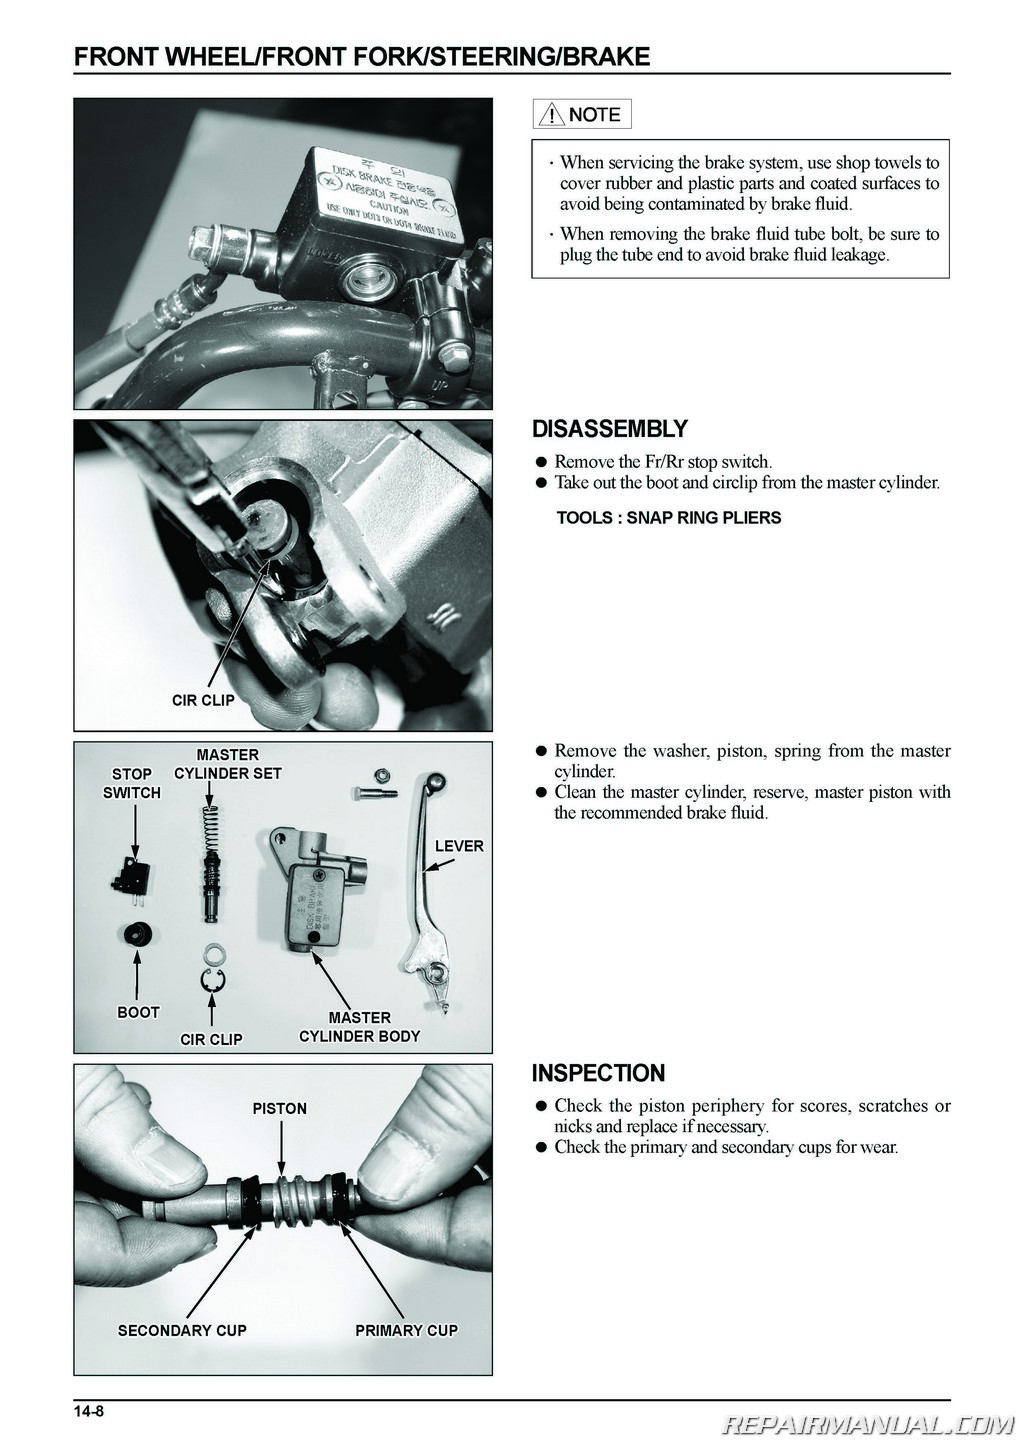 Daelim S2 250 Scooter Service Manual